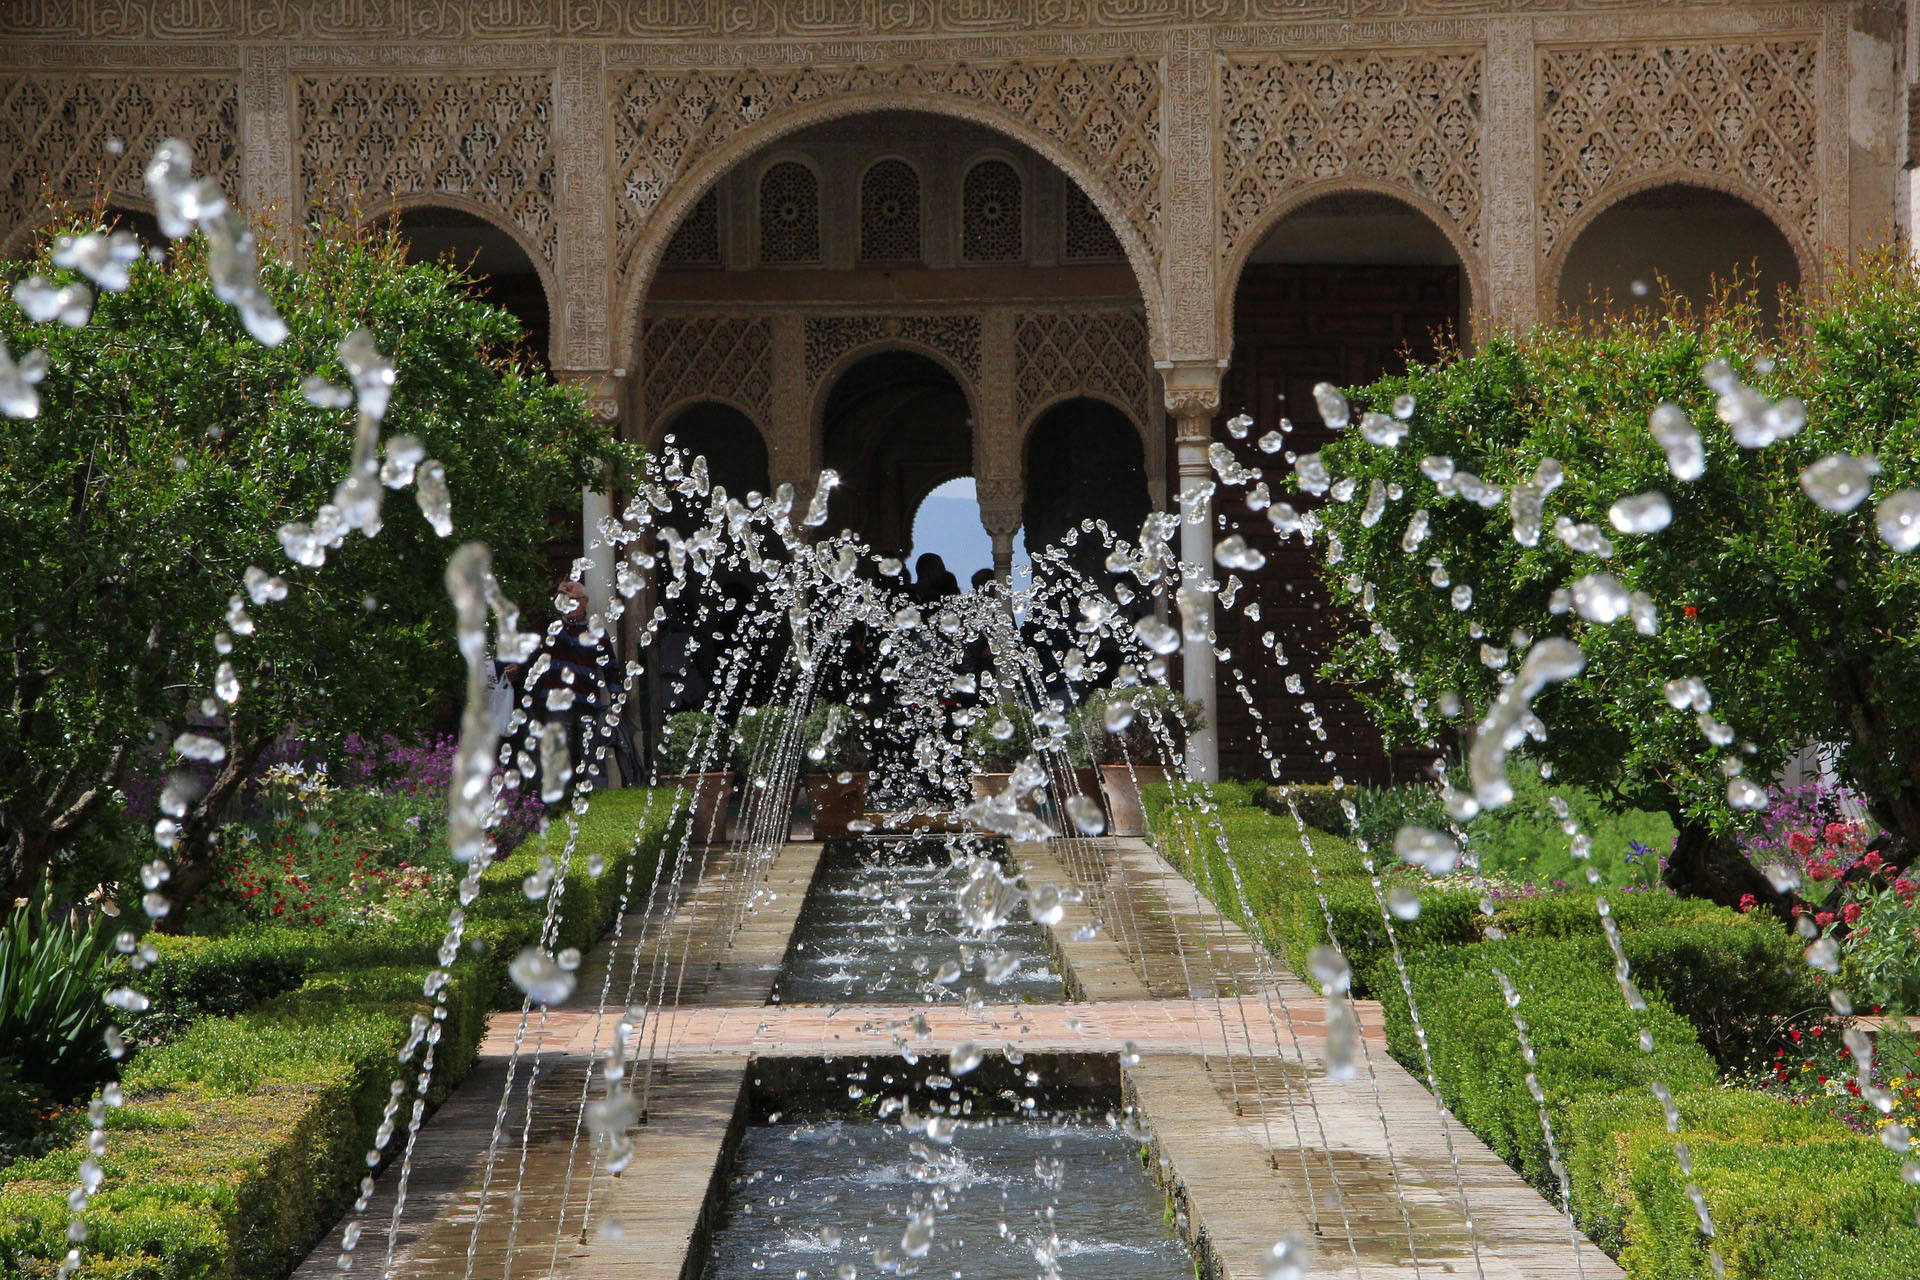 THE GARDENS OF AL-ANDALUS